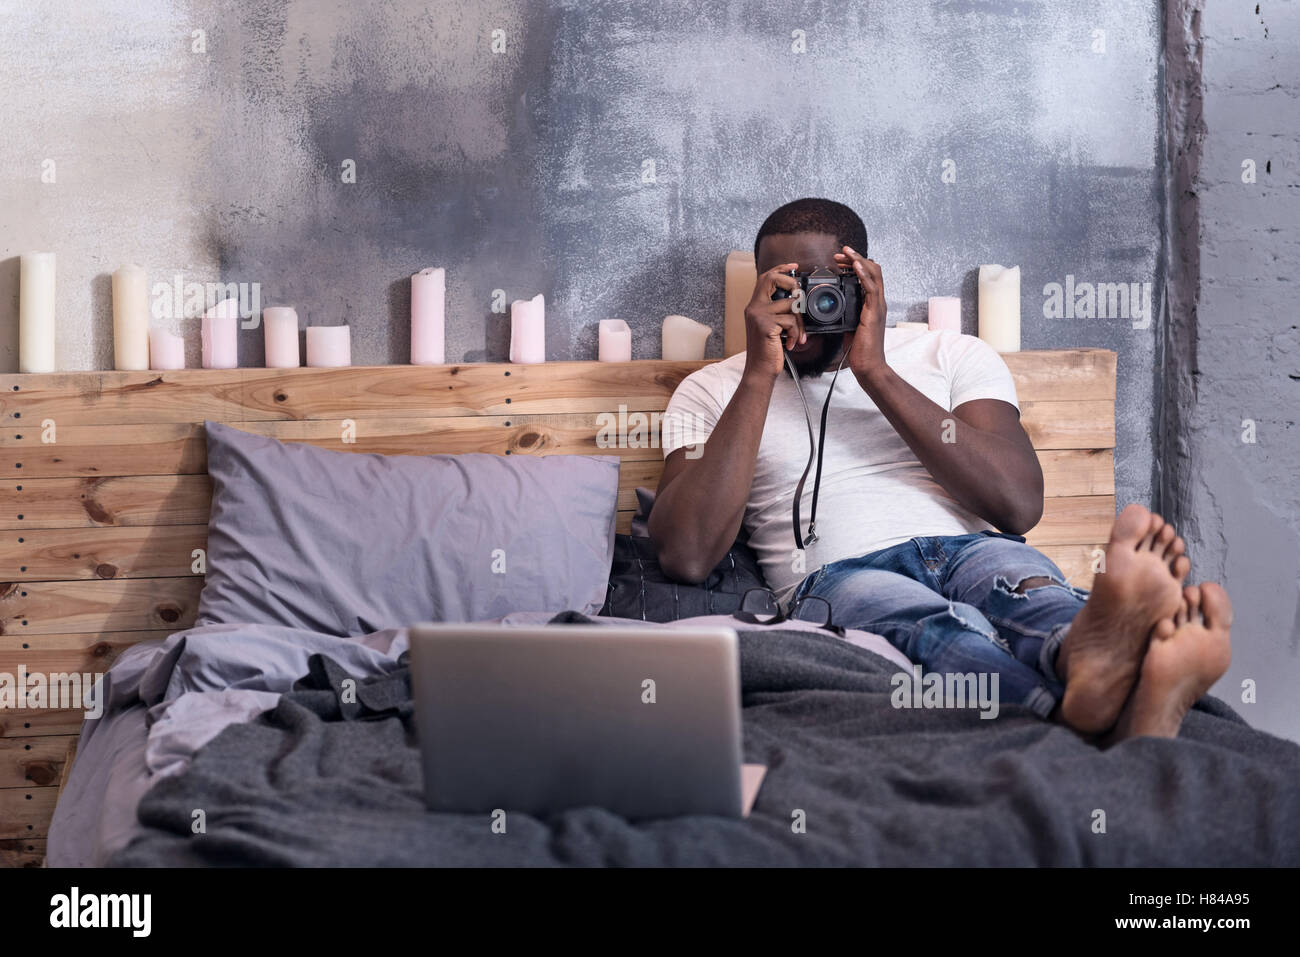 African man holding a camera in bedroom - Stock Image